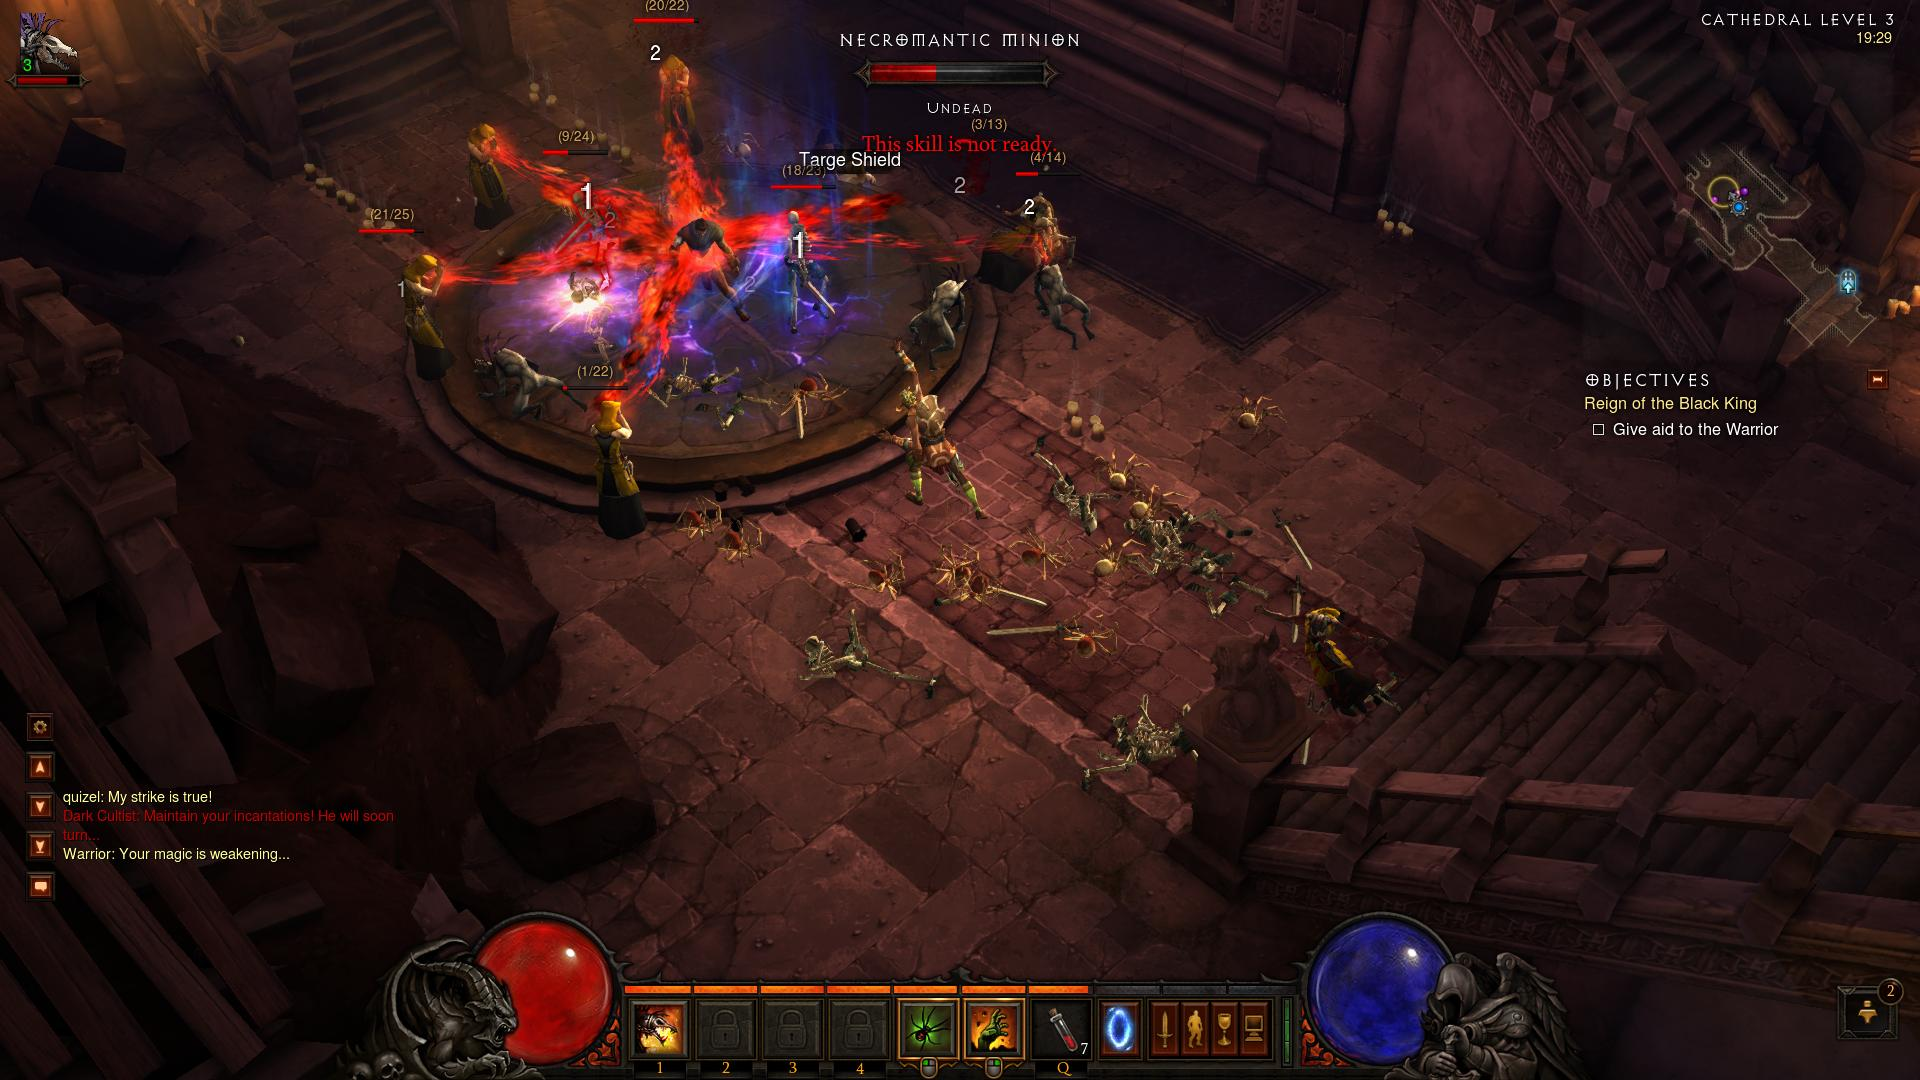 Cathedral level 3 Diablo 3 d3 screenshot